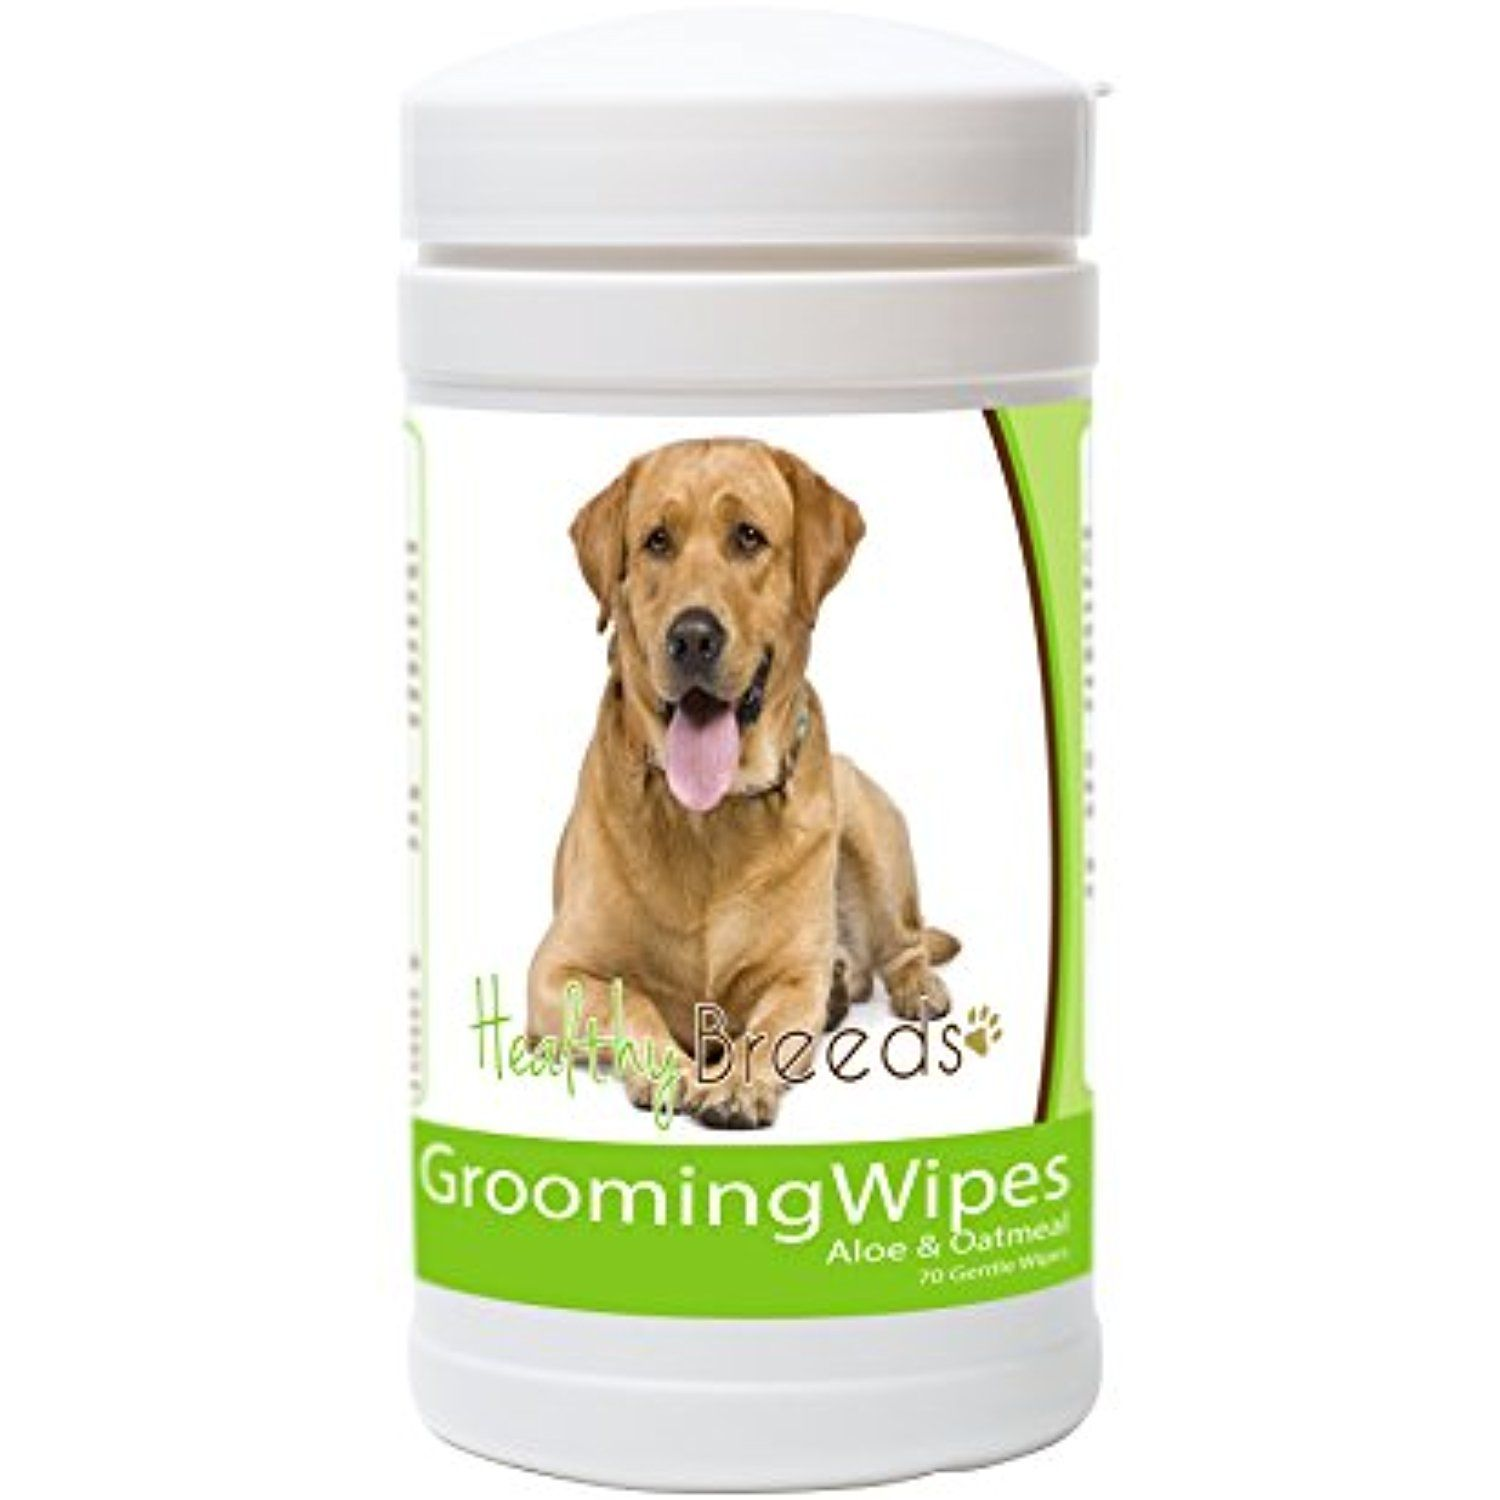 Healthy Breeds Dog Multi Purpose Grooming Wipes For Labrador